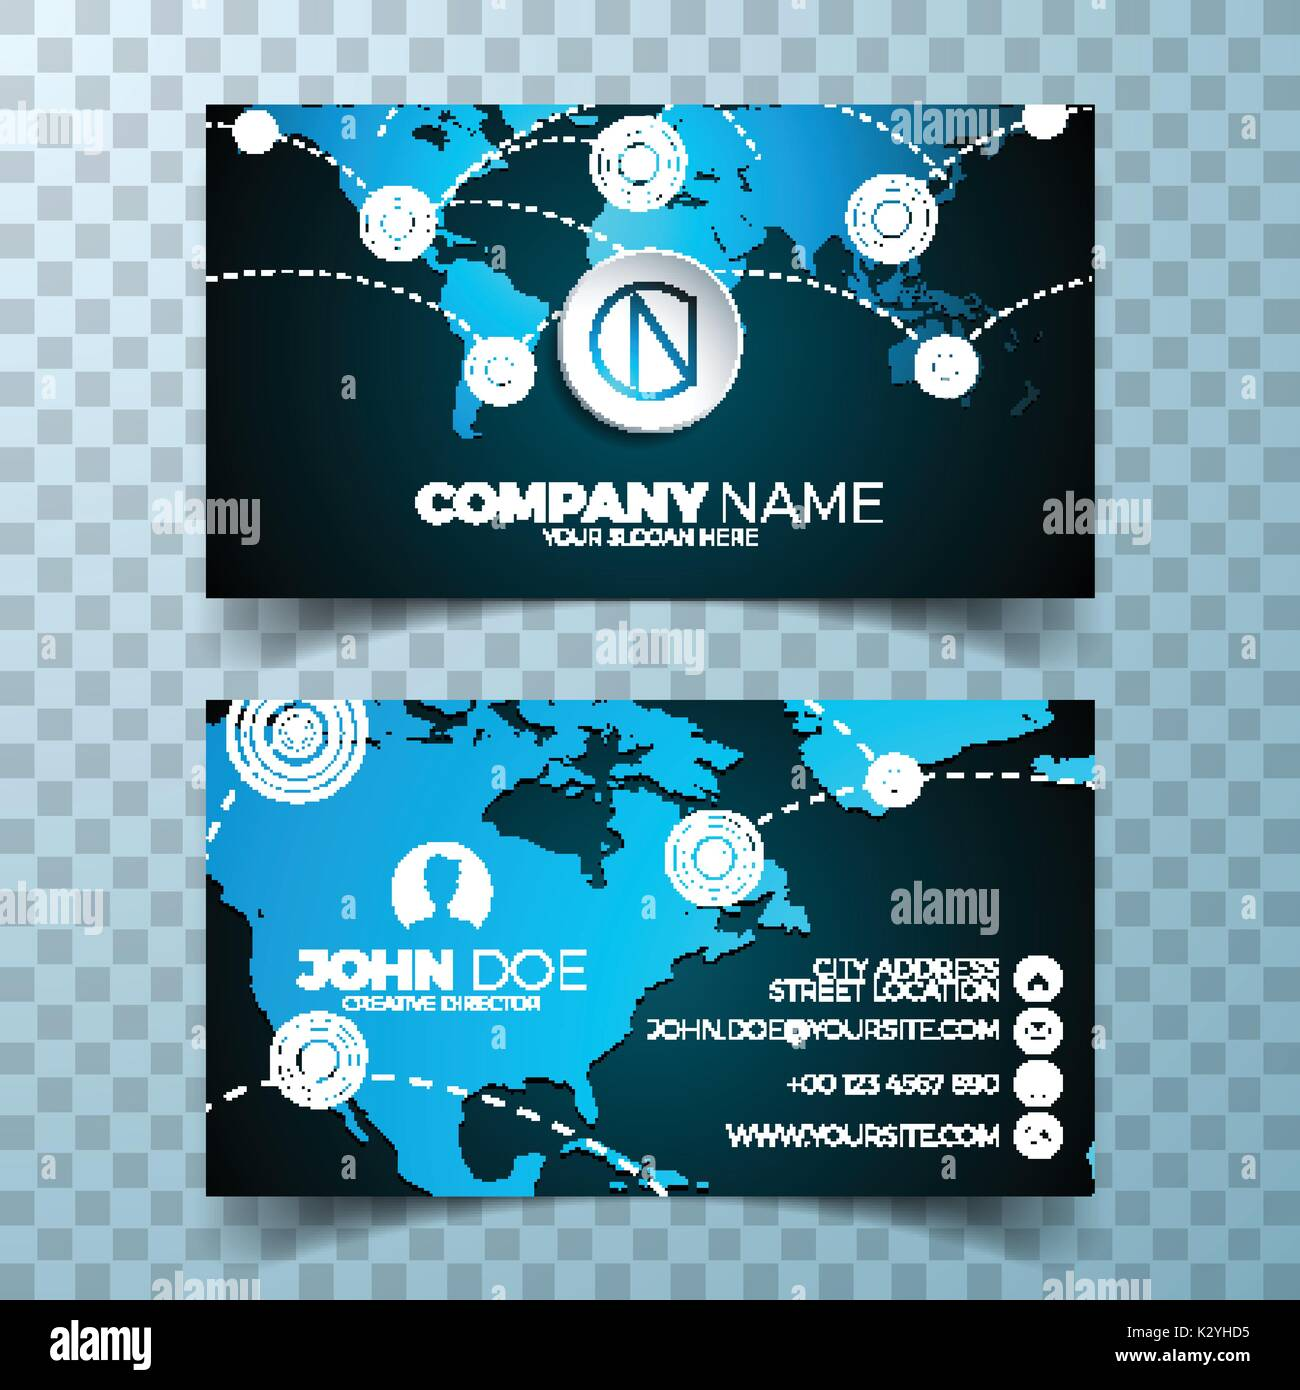 Vector modern business card design template with world map ... on wedding maps, social media maps, wallpaper maps, business map maker, full page maps, business cards old world, envelope maps, tract maps,